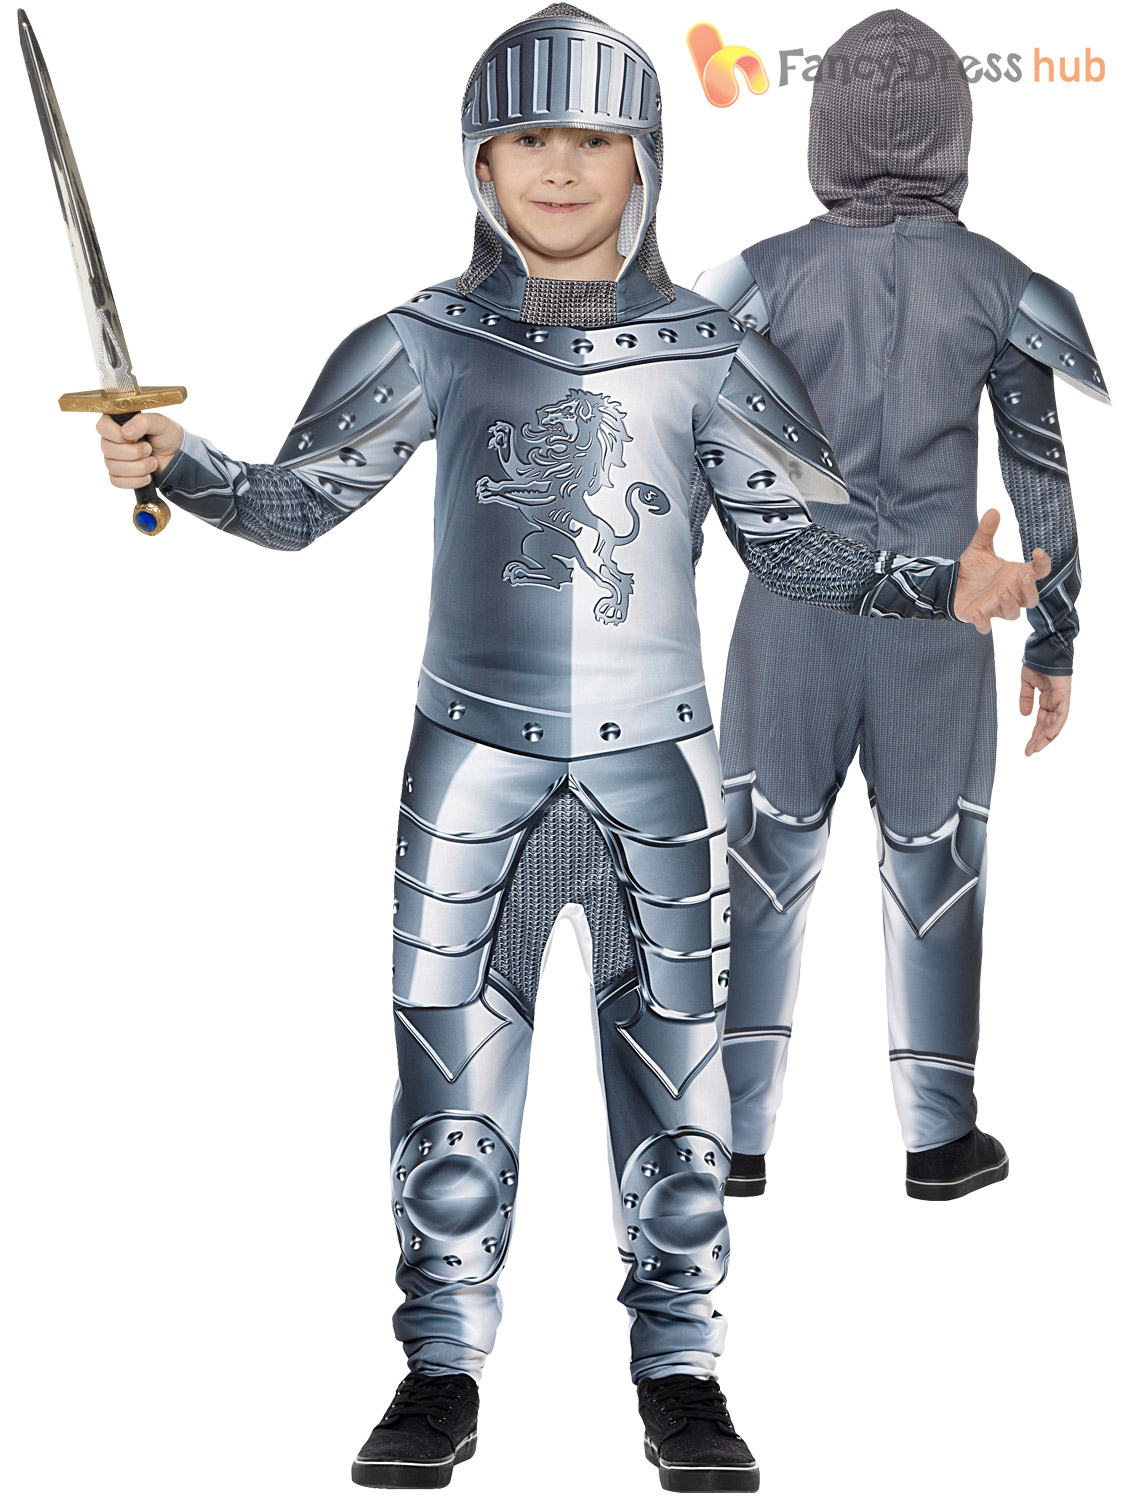 Boys-Medieval-Knight-Costume-Childs-Suit-of-Armour-Fancy-Dress-Book-Day thumbnail 3